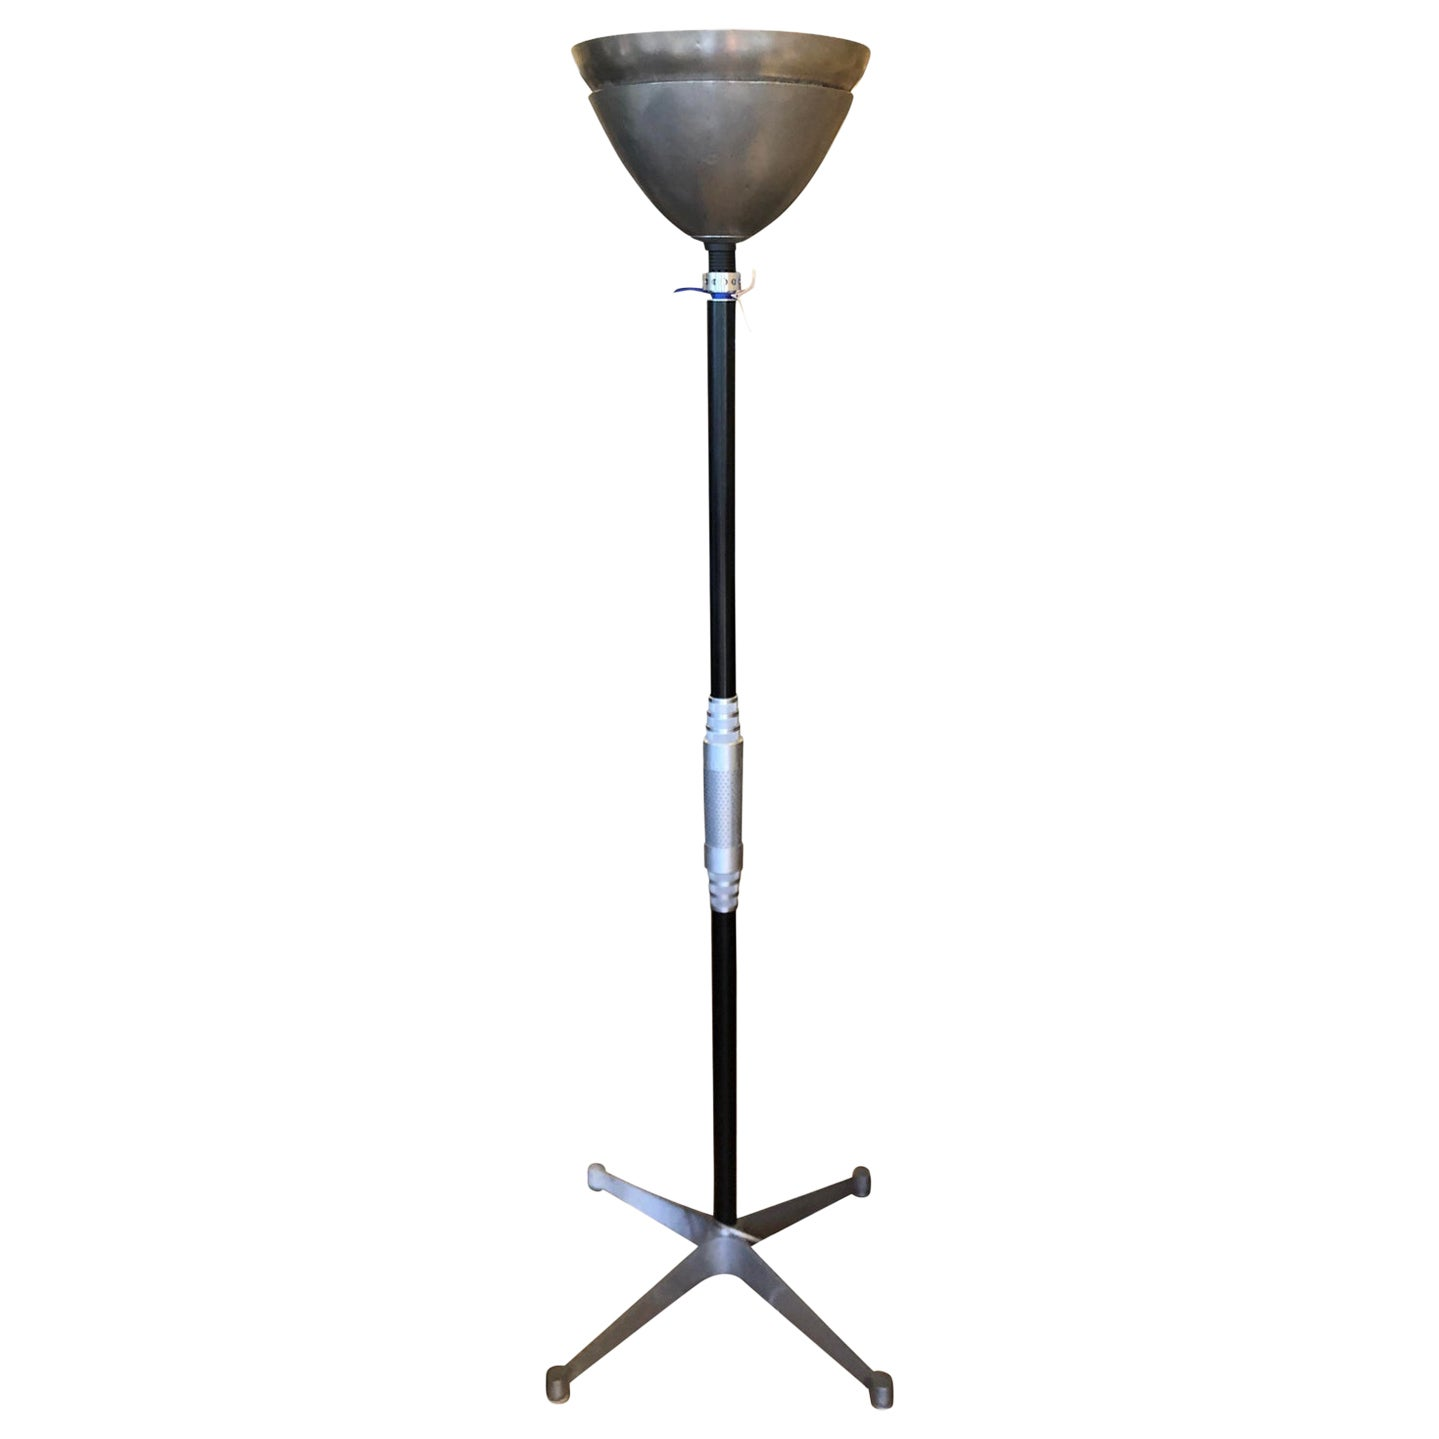 Art Deco Walter Von Nessen Style Machine Age Industrial Floor Lamp